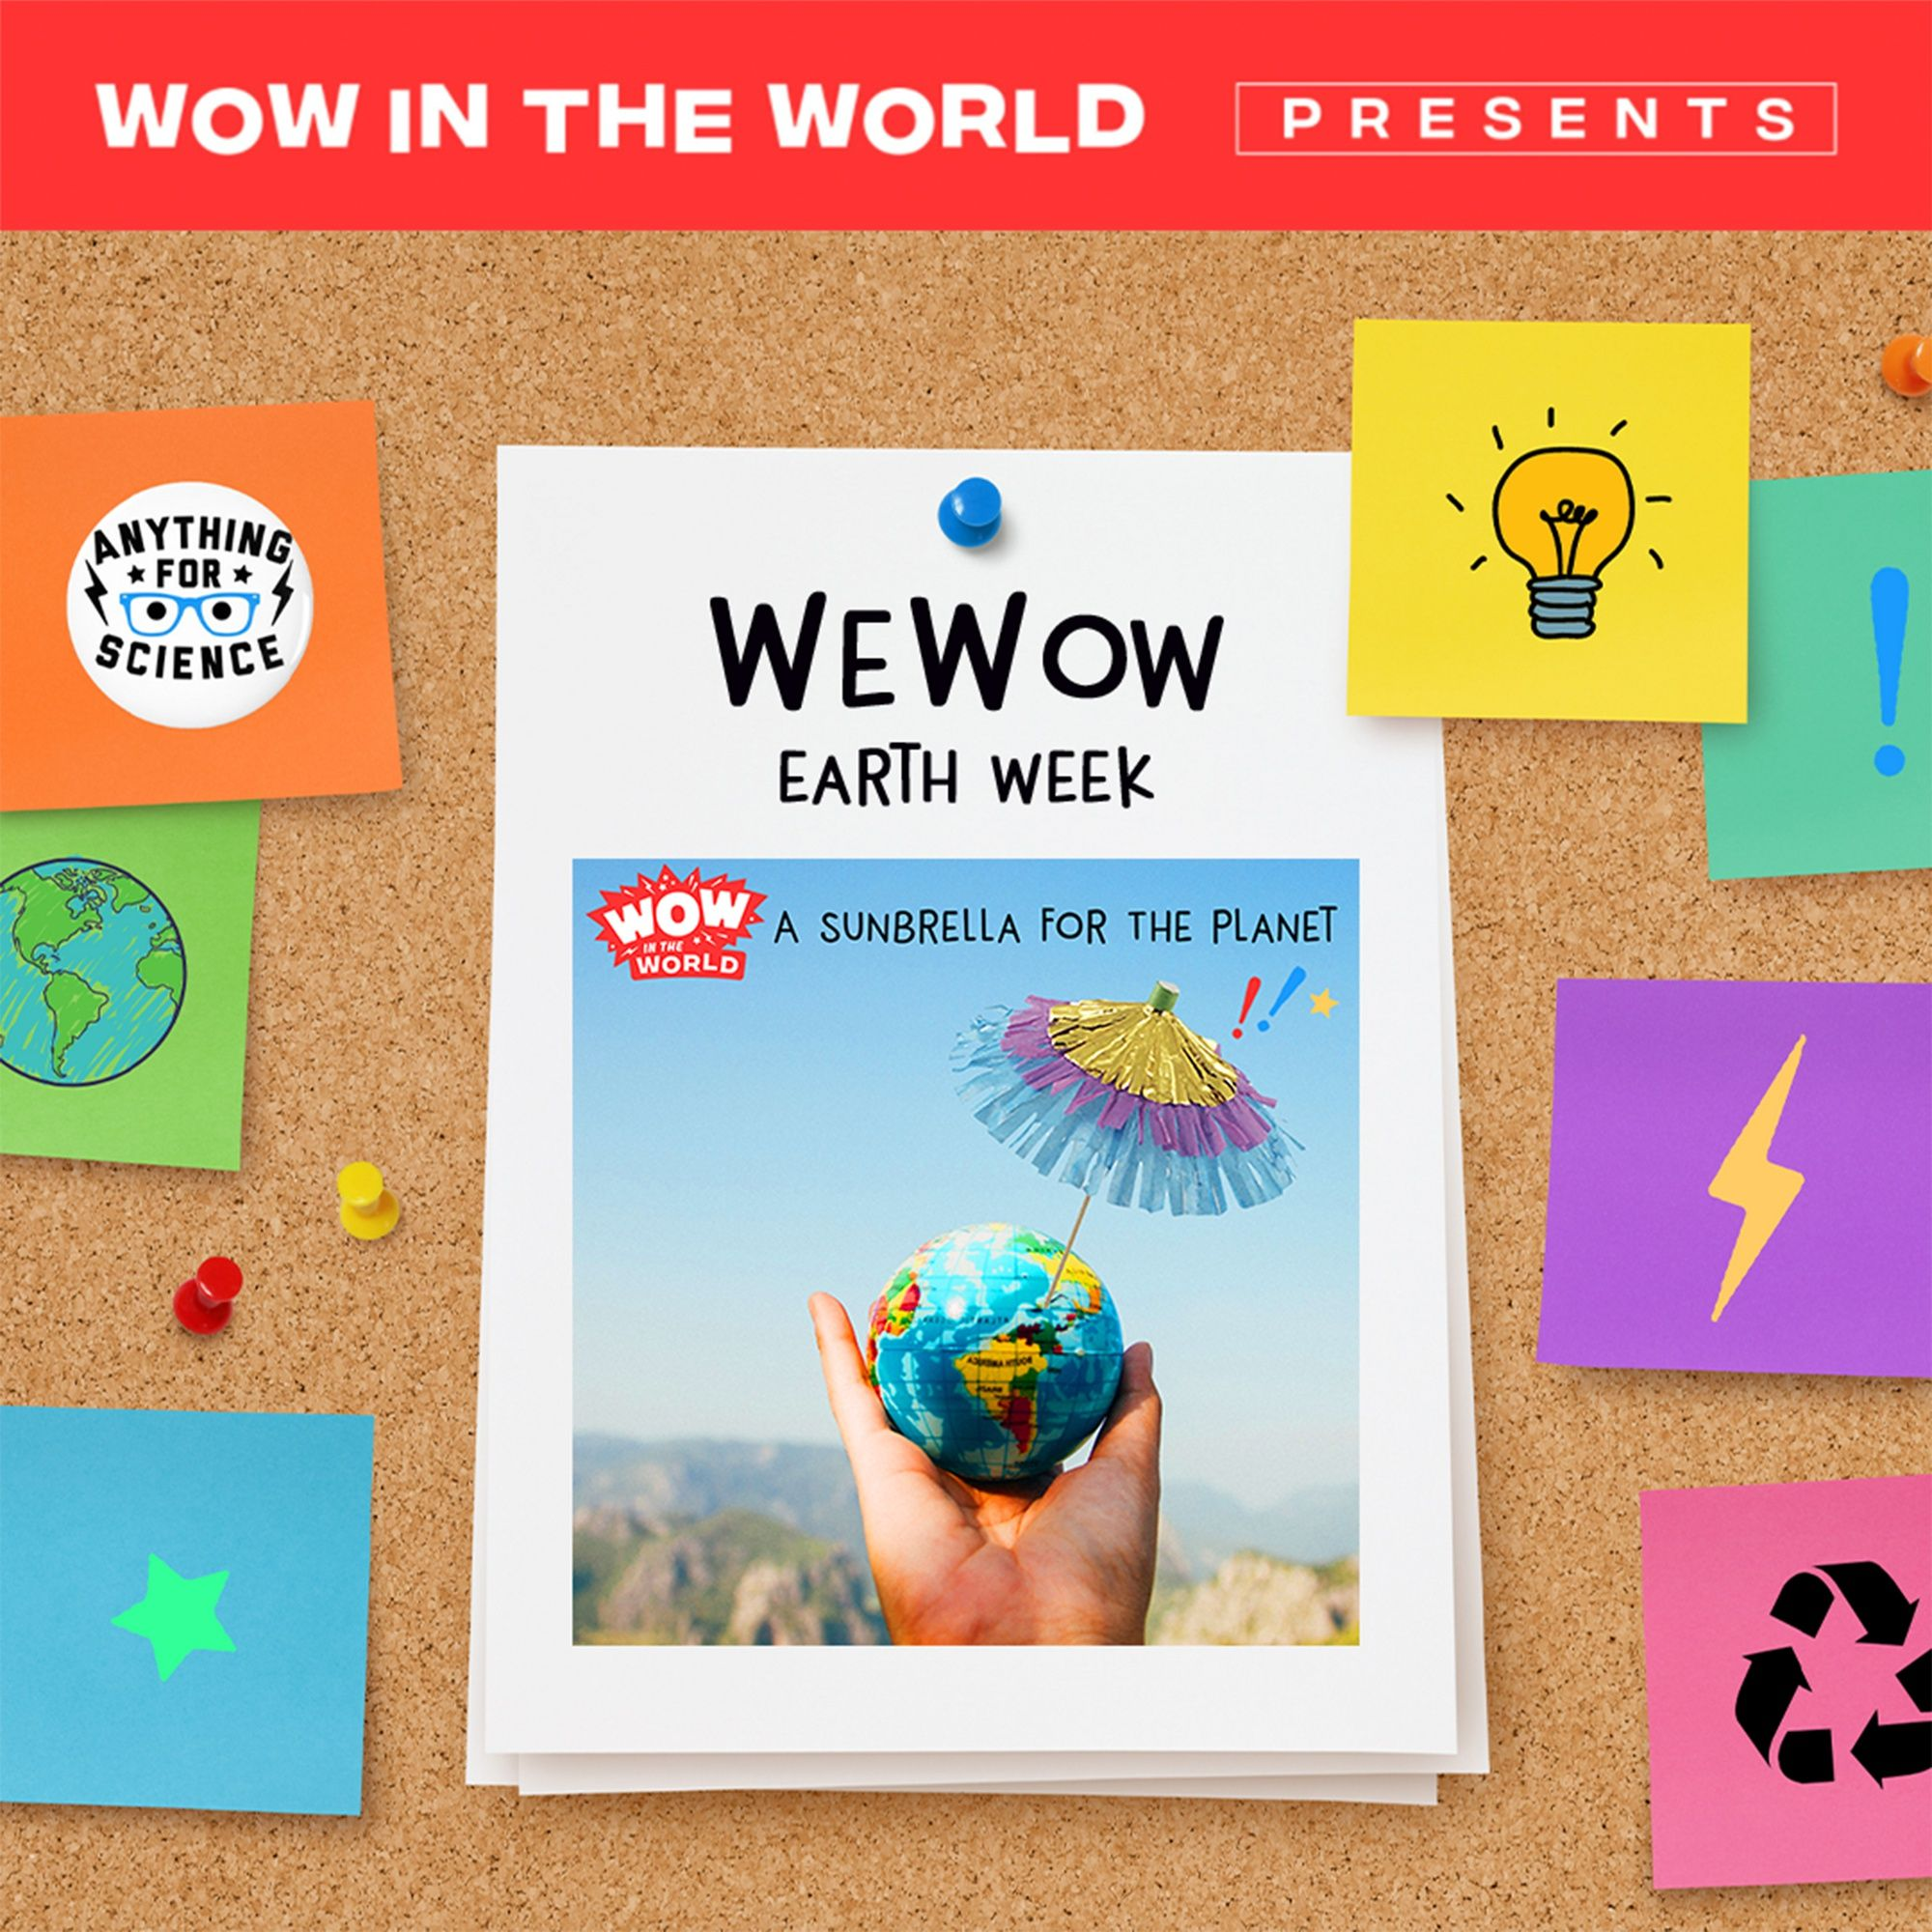 WeWow Earth Week Day 1: A Sunbrella For The Planet